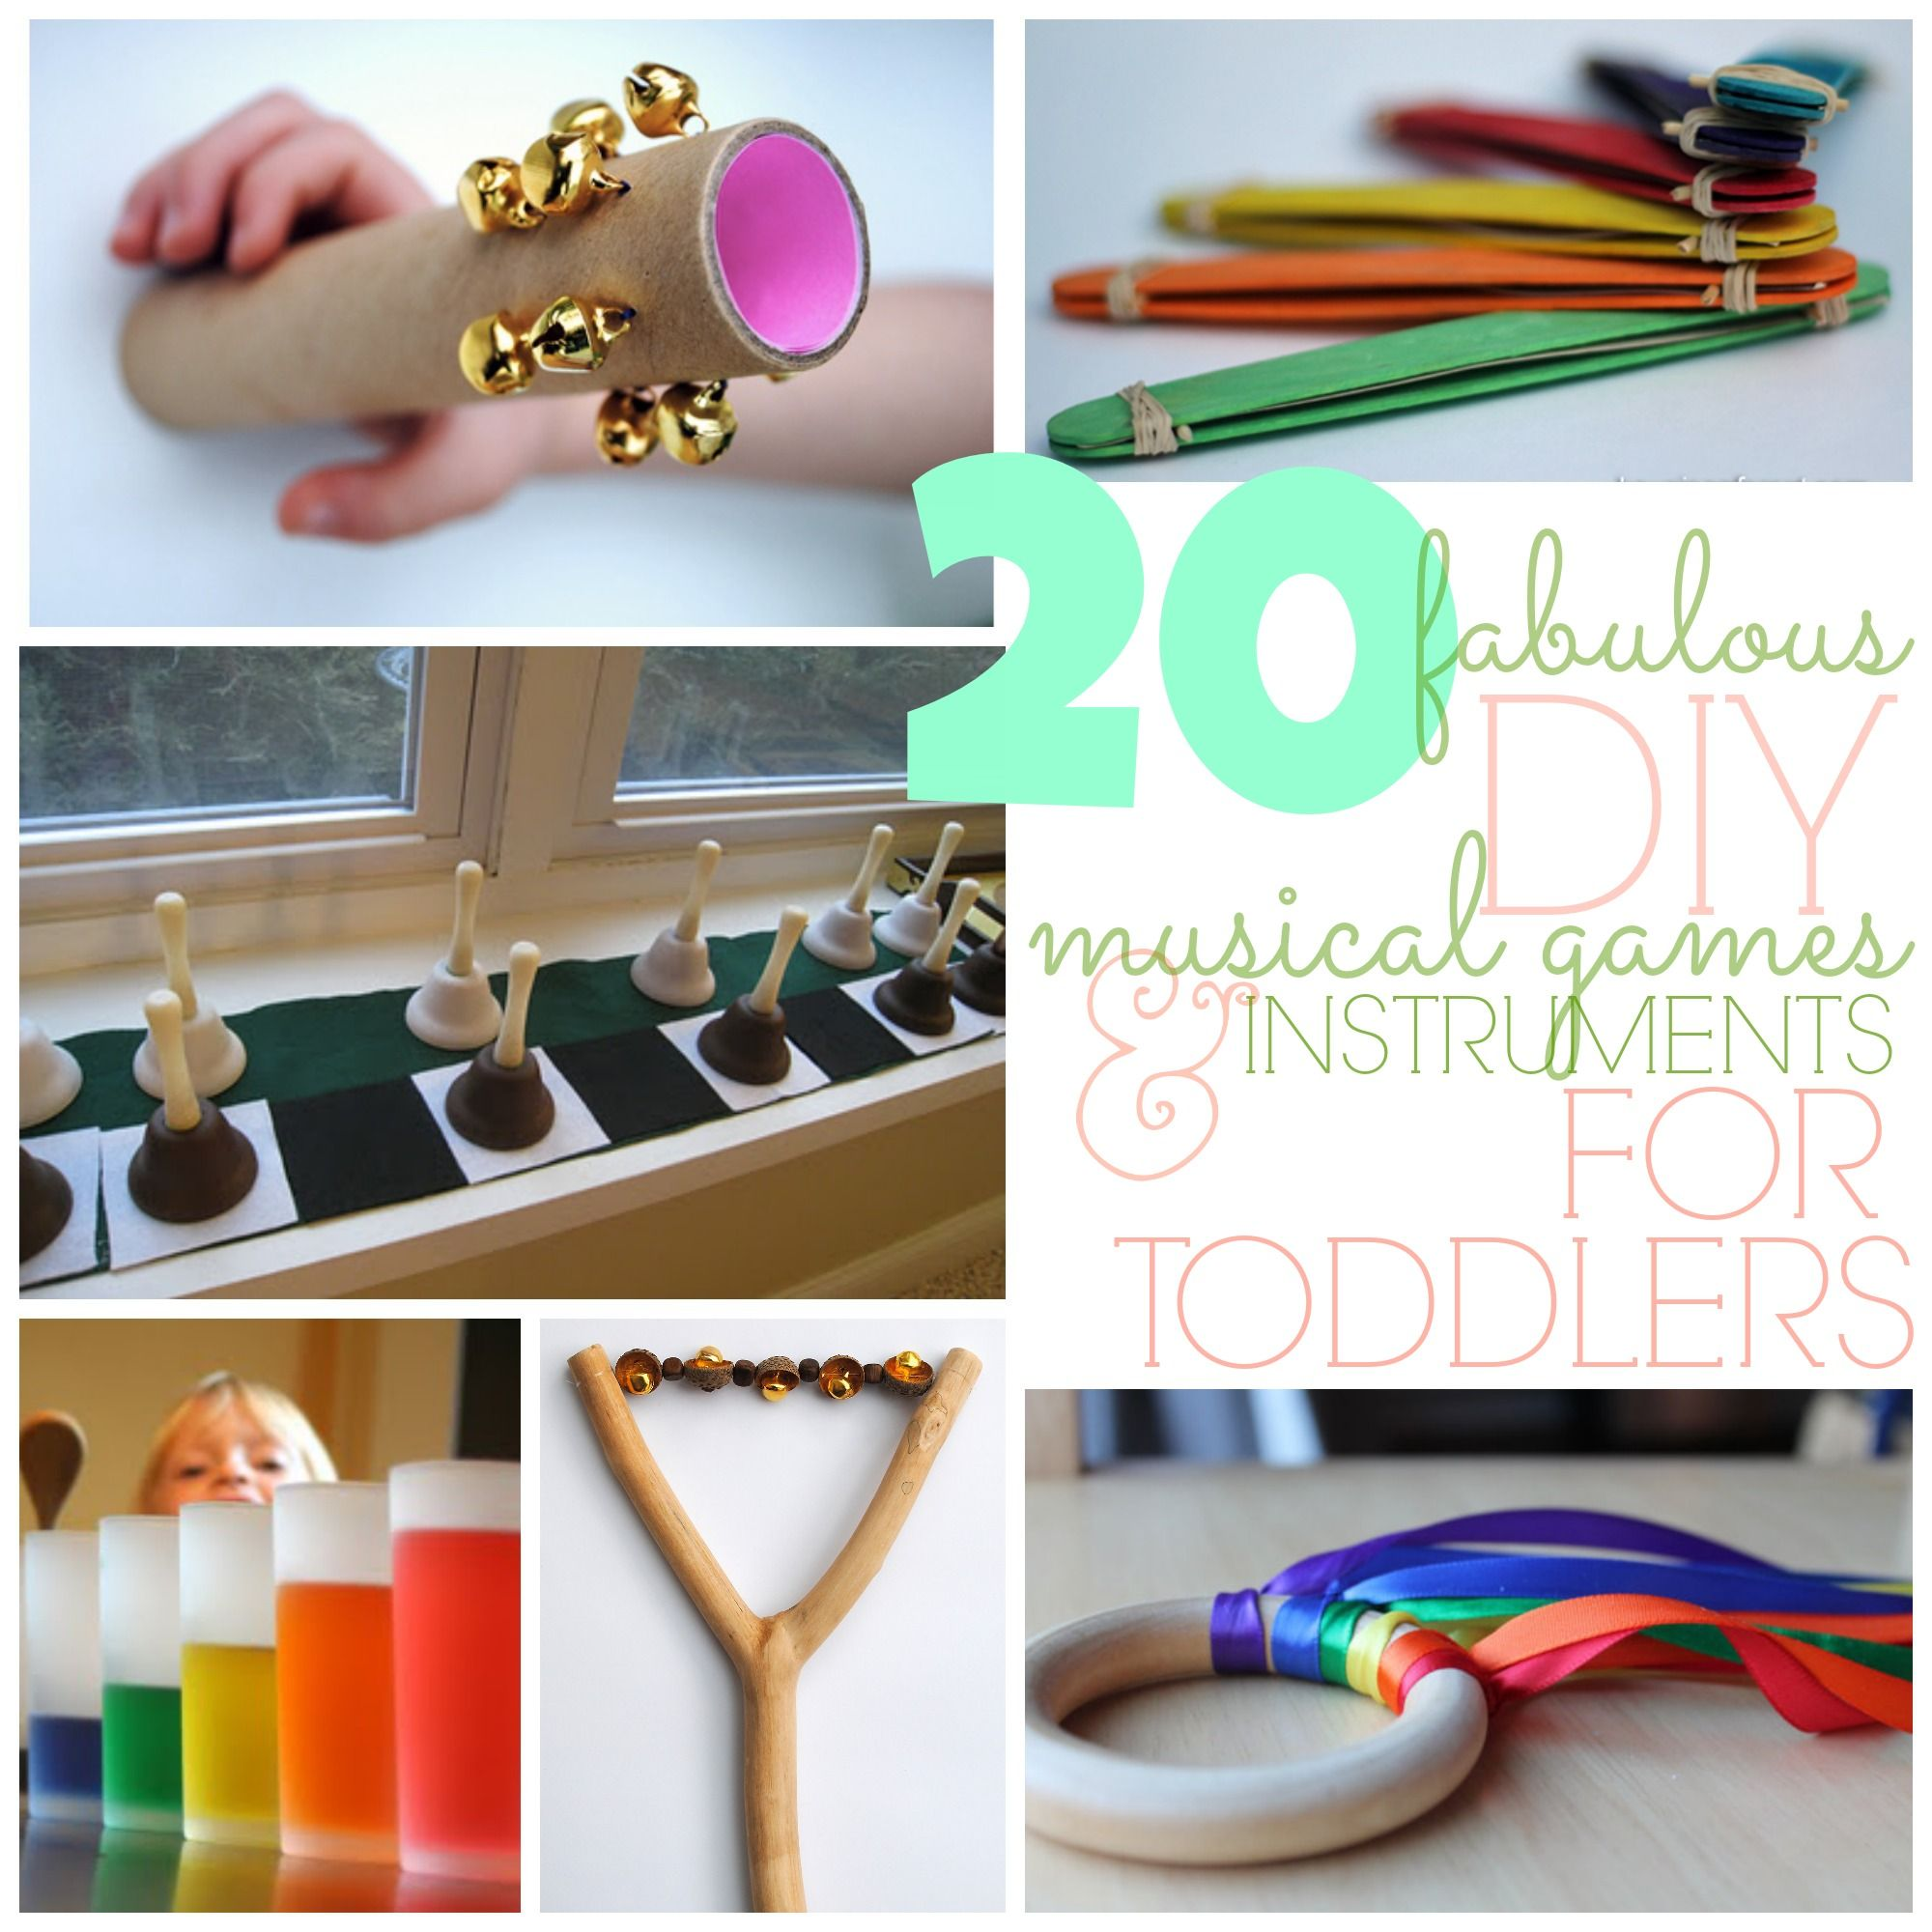 Activities Crafts Games: 20 Fabulous DIY Musical Games & Instruments For Toddlers